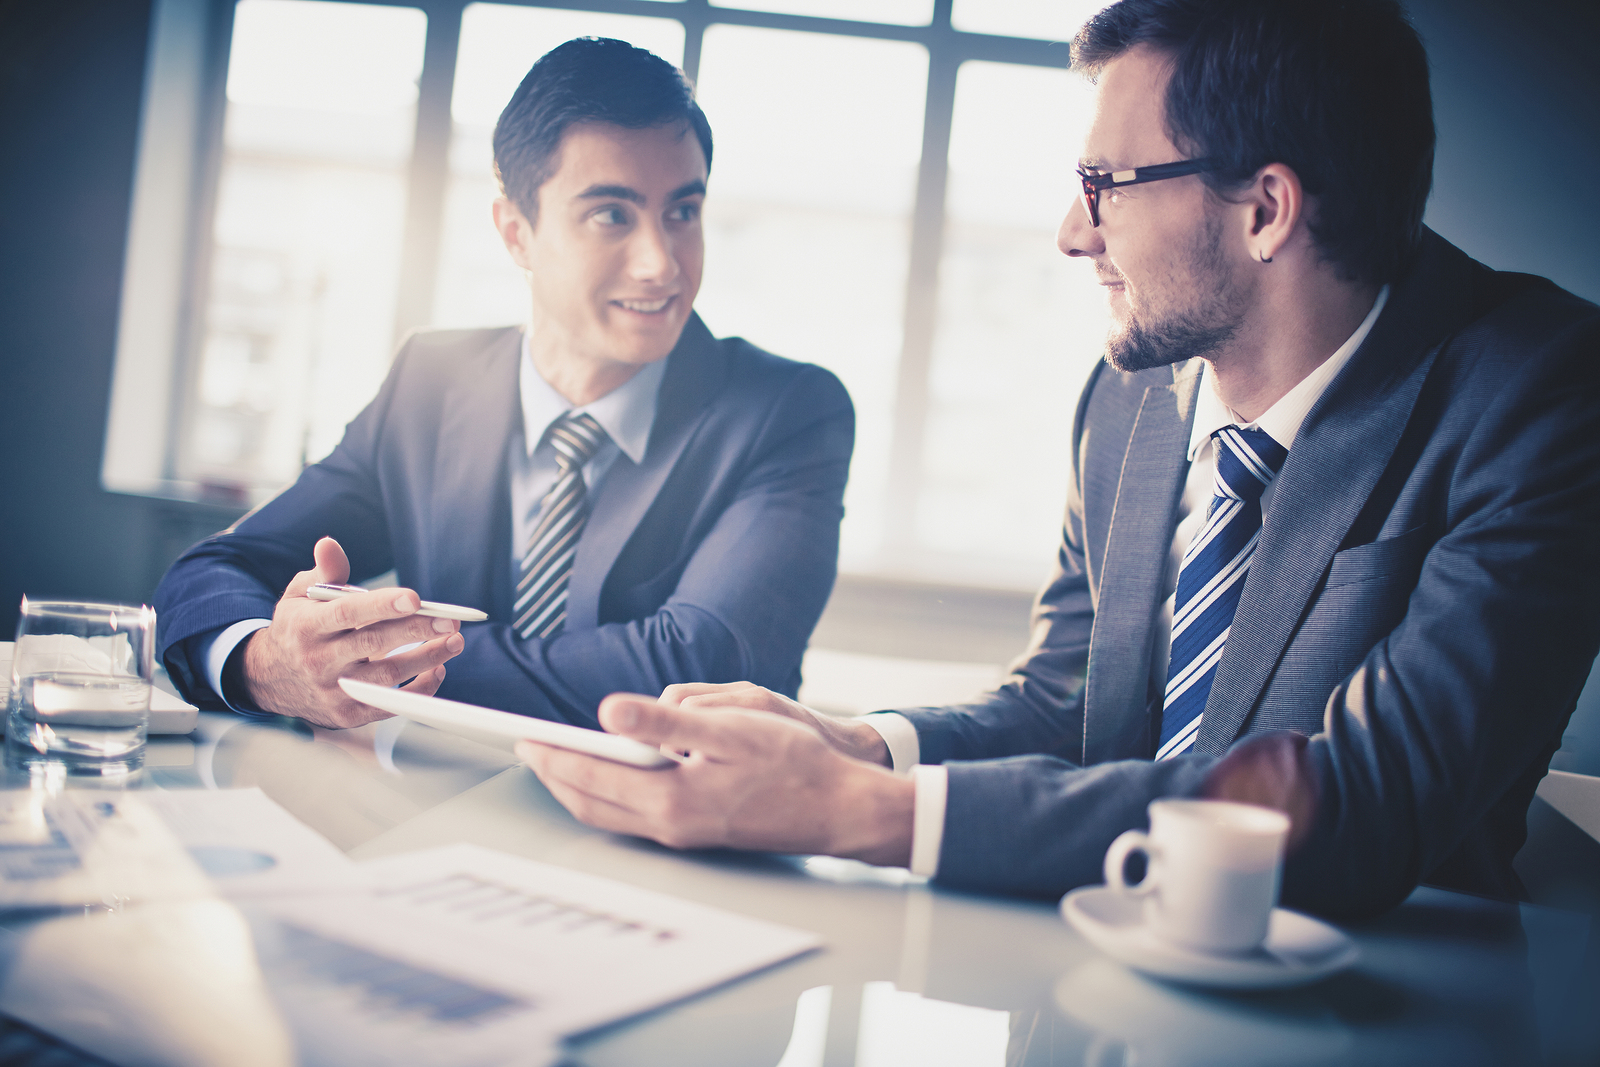 How to Get an Executive Job Interview recommendations